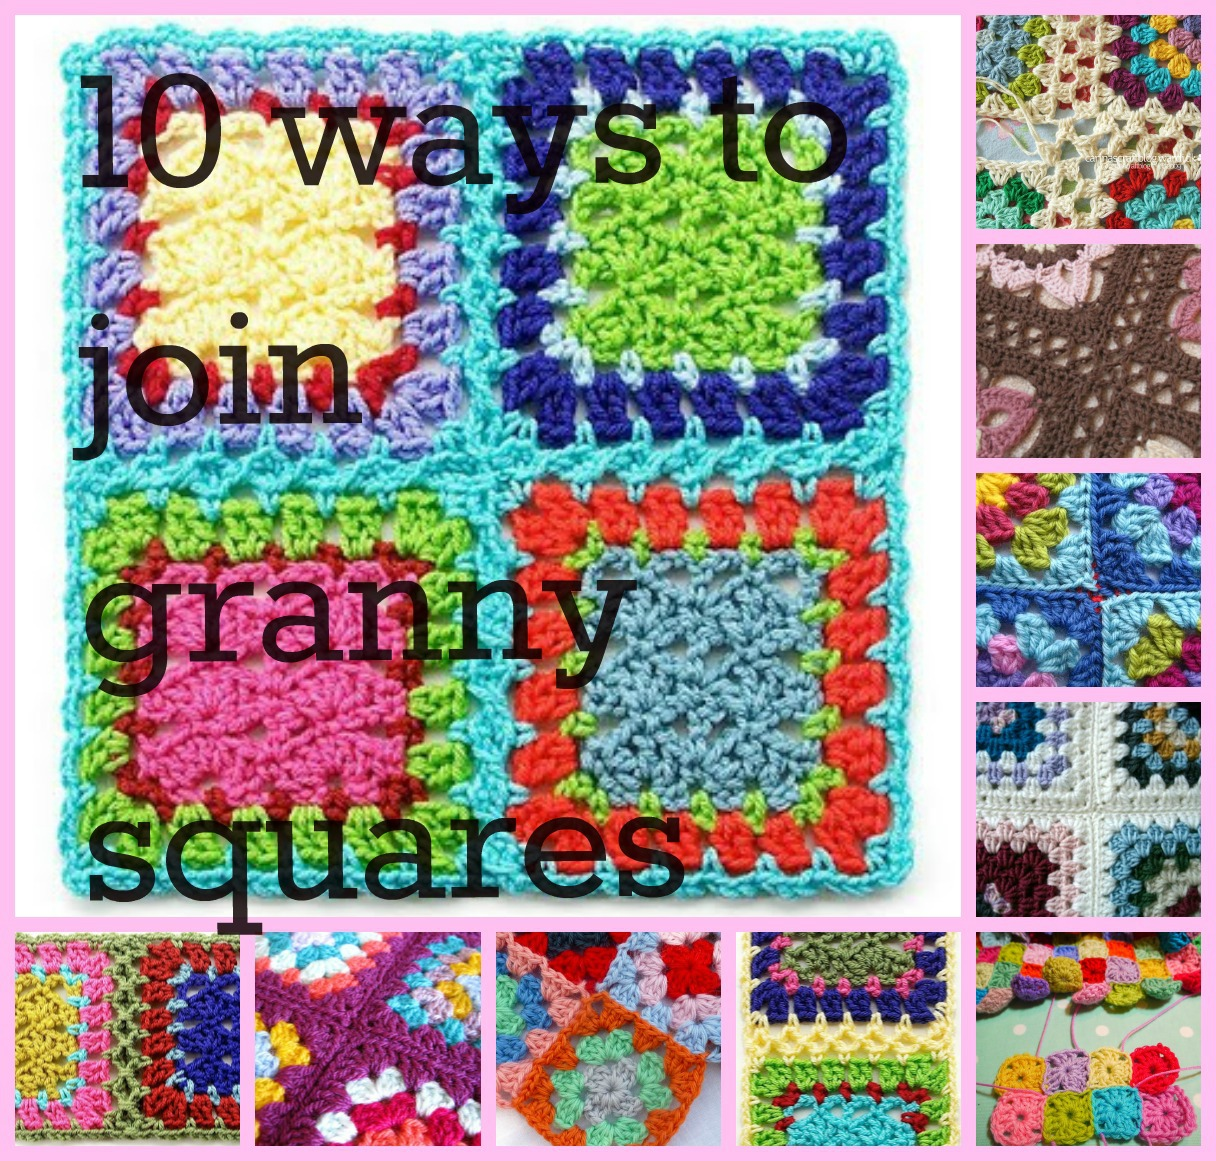 Crochet Patterns Joining Squares : Knot Your Nanas Crochet: 10. Different Ways To Join Granny Squares